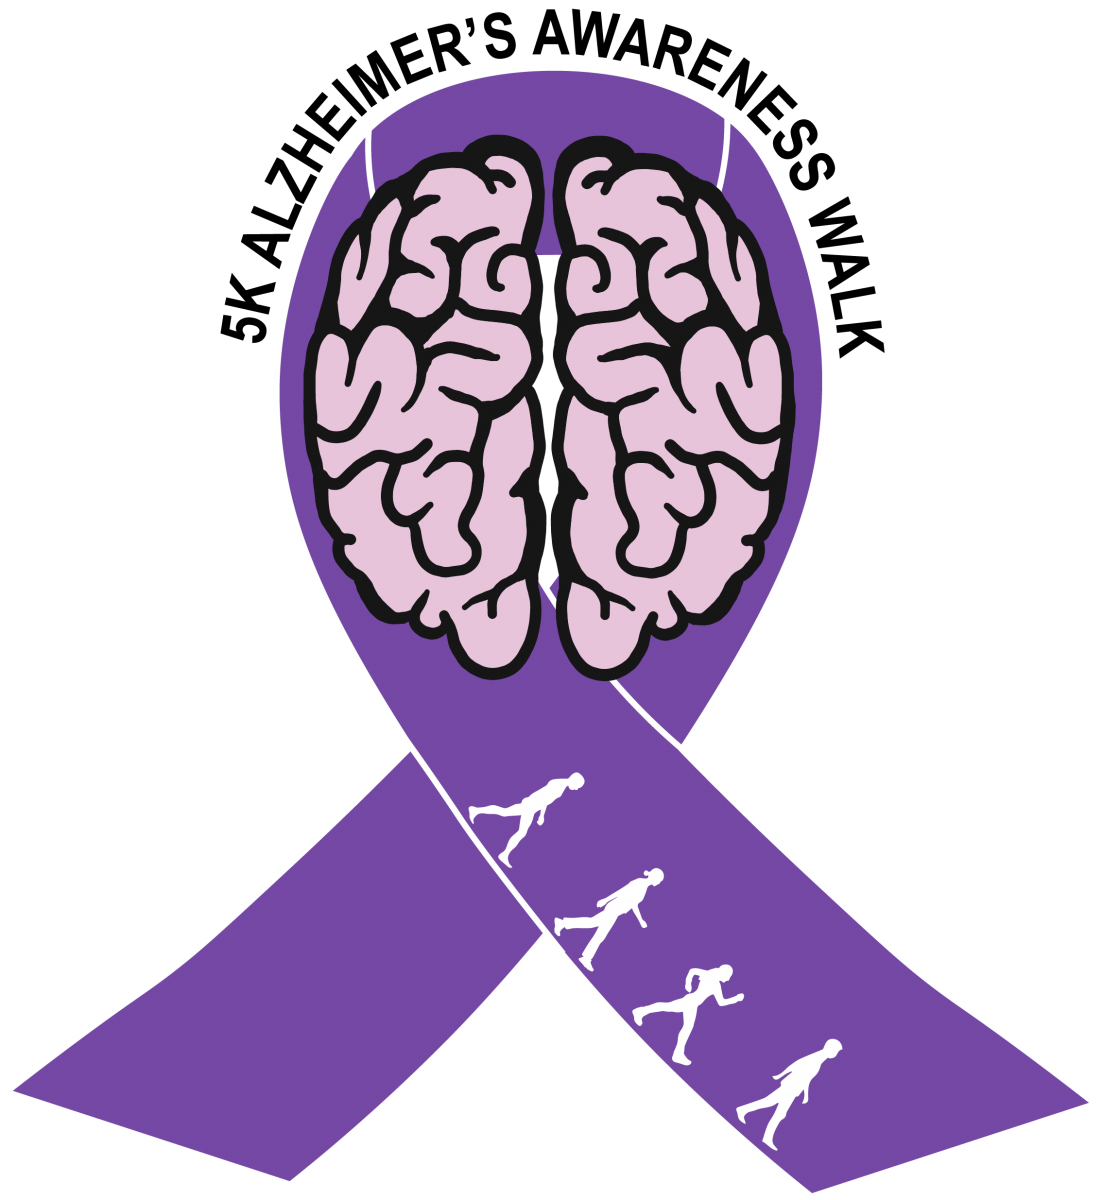 Alzheimer s ribbon clipart png black and white library 5K for Alzheimer\'s Awareness | The Honors College png black and white library